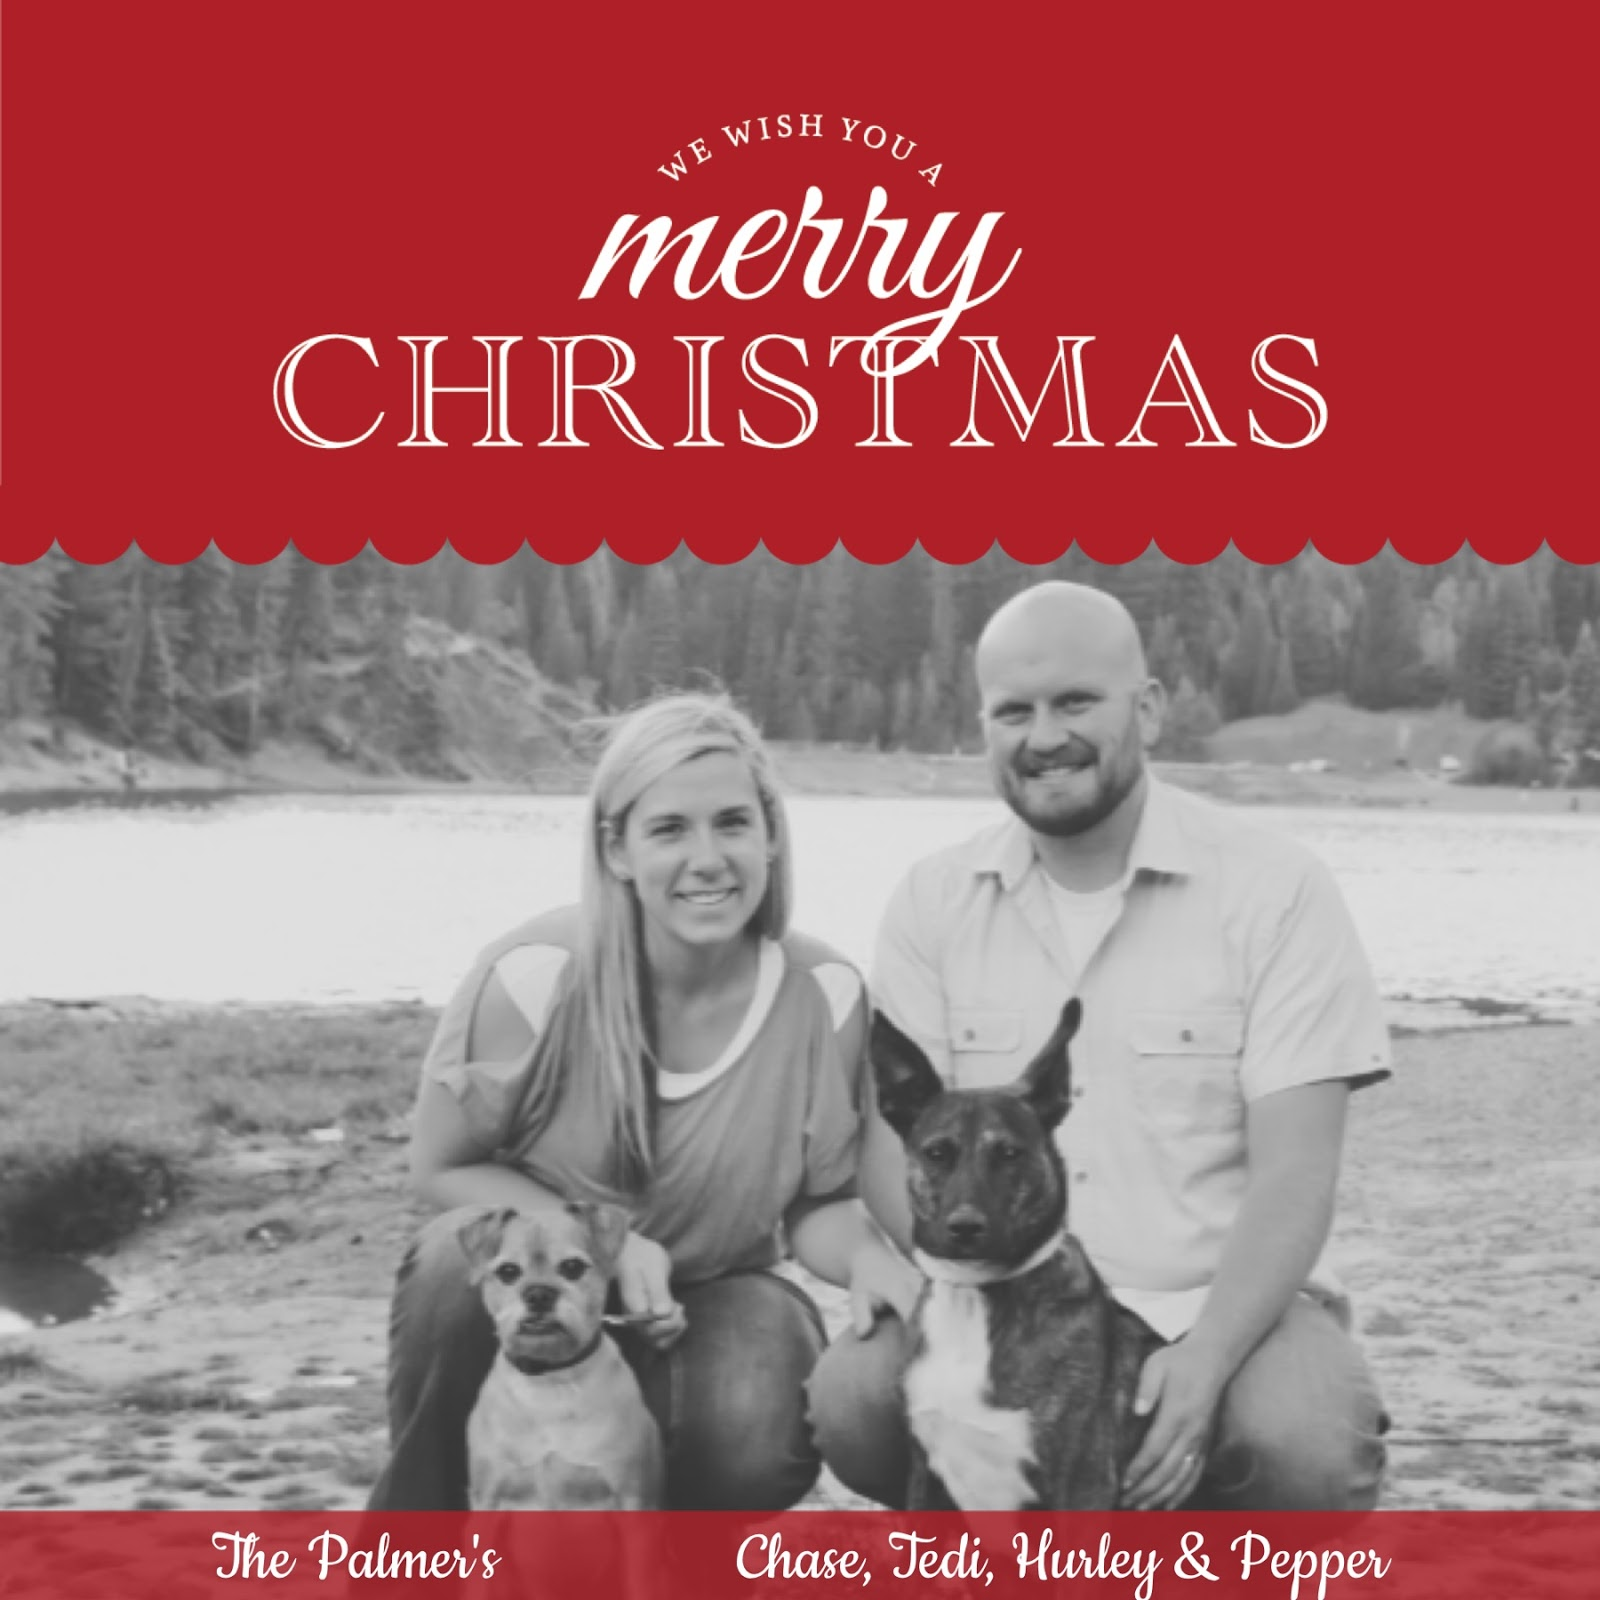 Merry Christmas from the Palmers